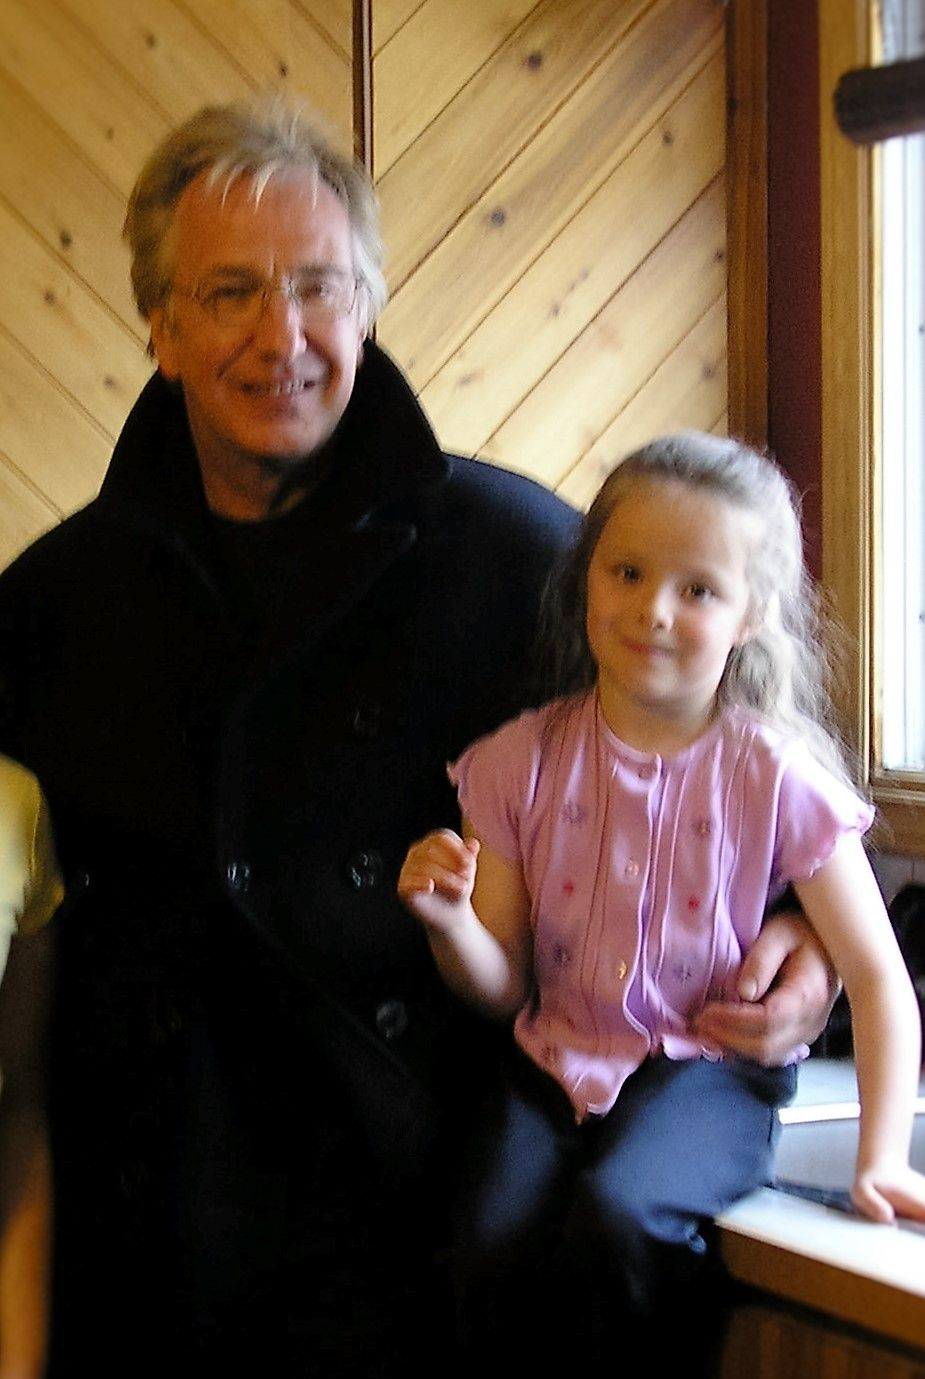 In Late 2005, when I was about 6 or 7 years old, Snow Cake was being filmed in…